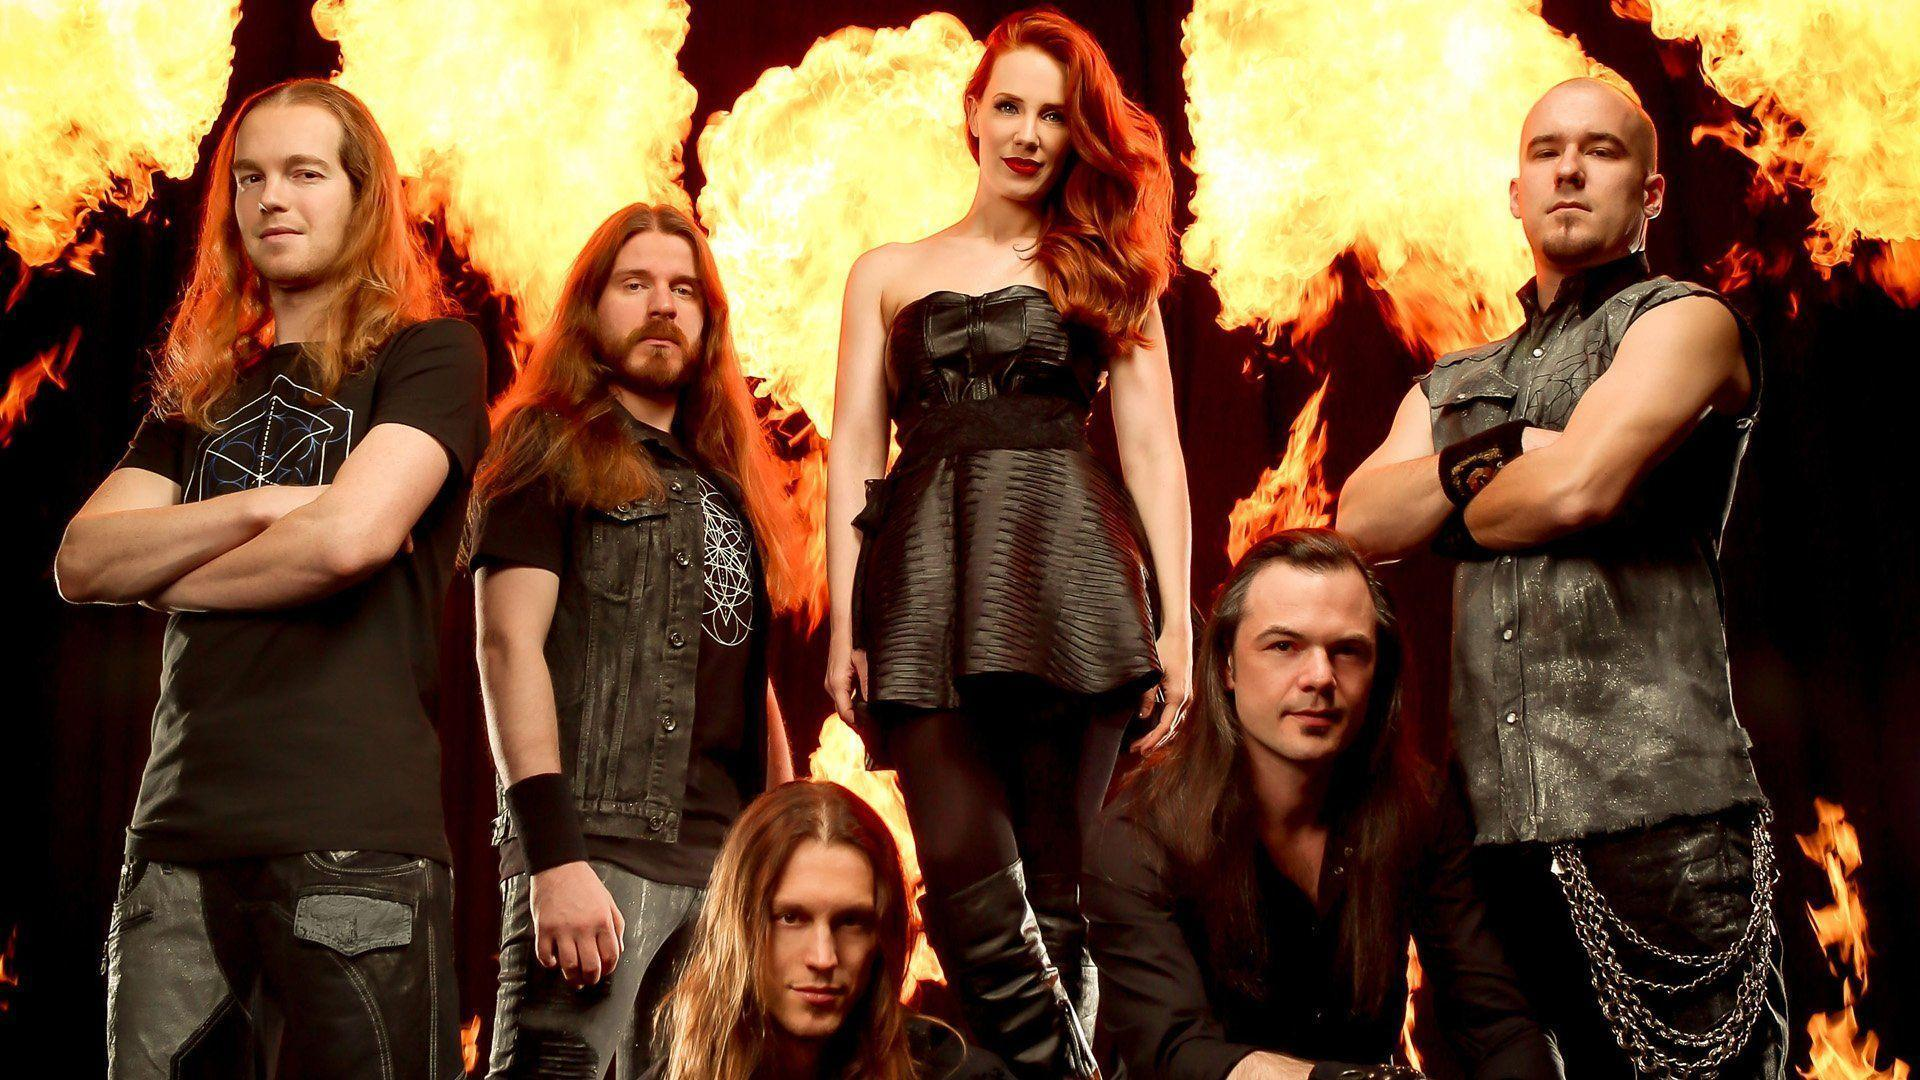 Best Epica Wallpapers, Epica 1920x1080 px Pictures by Jerald Marotta